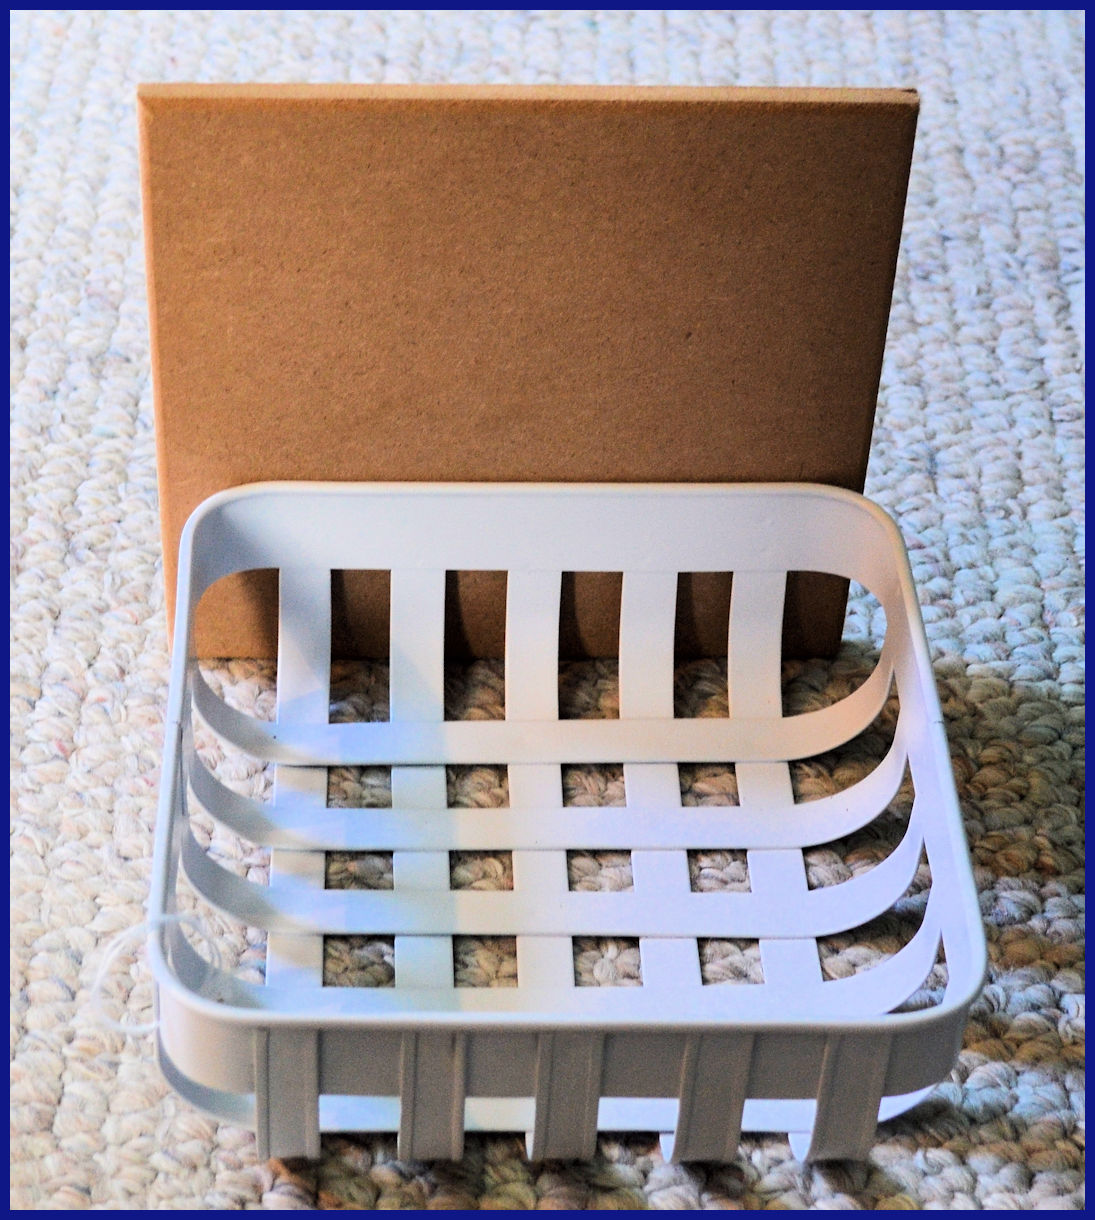 basket-white-napkin-basket-with-lid-up-np13527.jpg